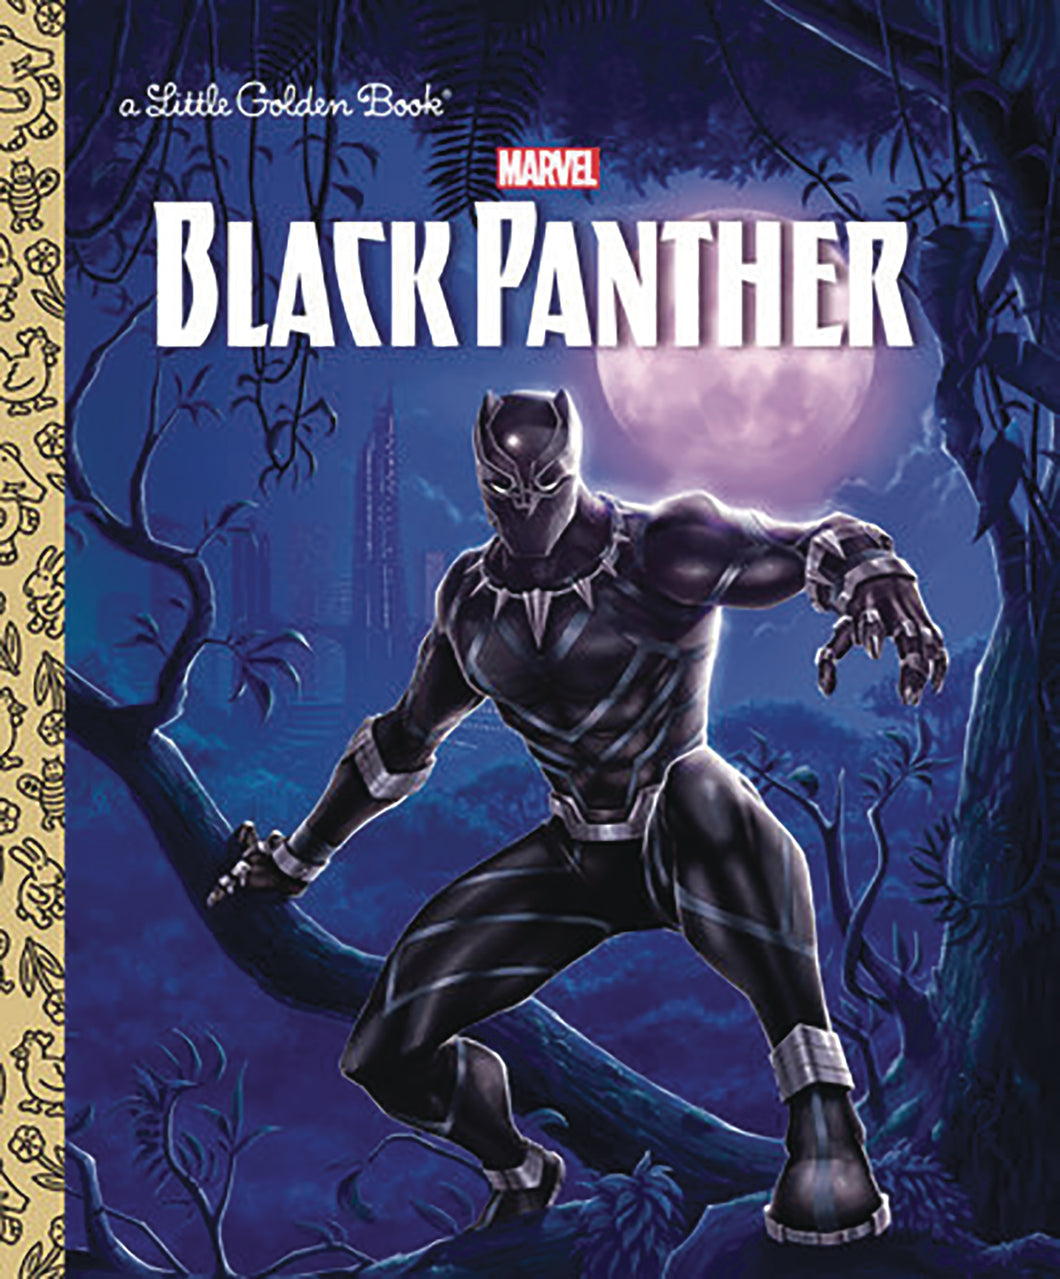 BLACK PANTHER LITTLE GOLDEN BOOK (C: 1-1-0)